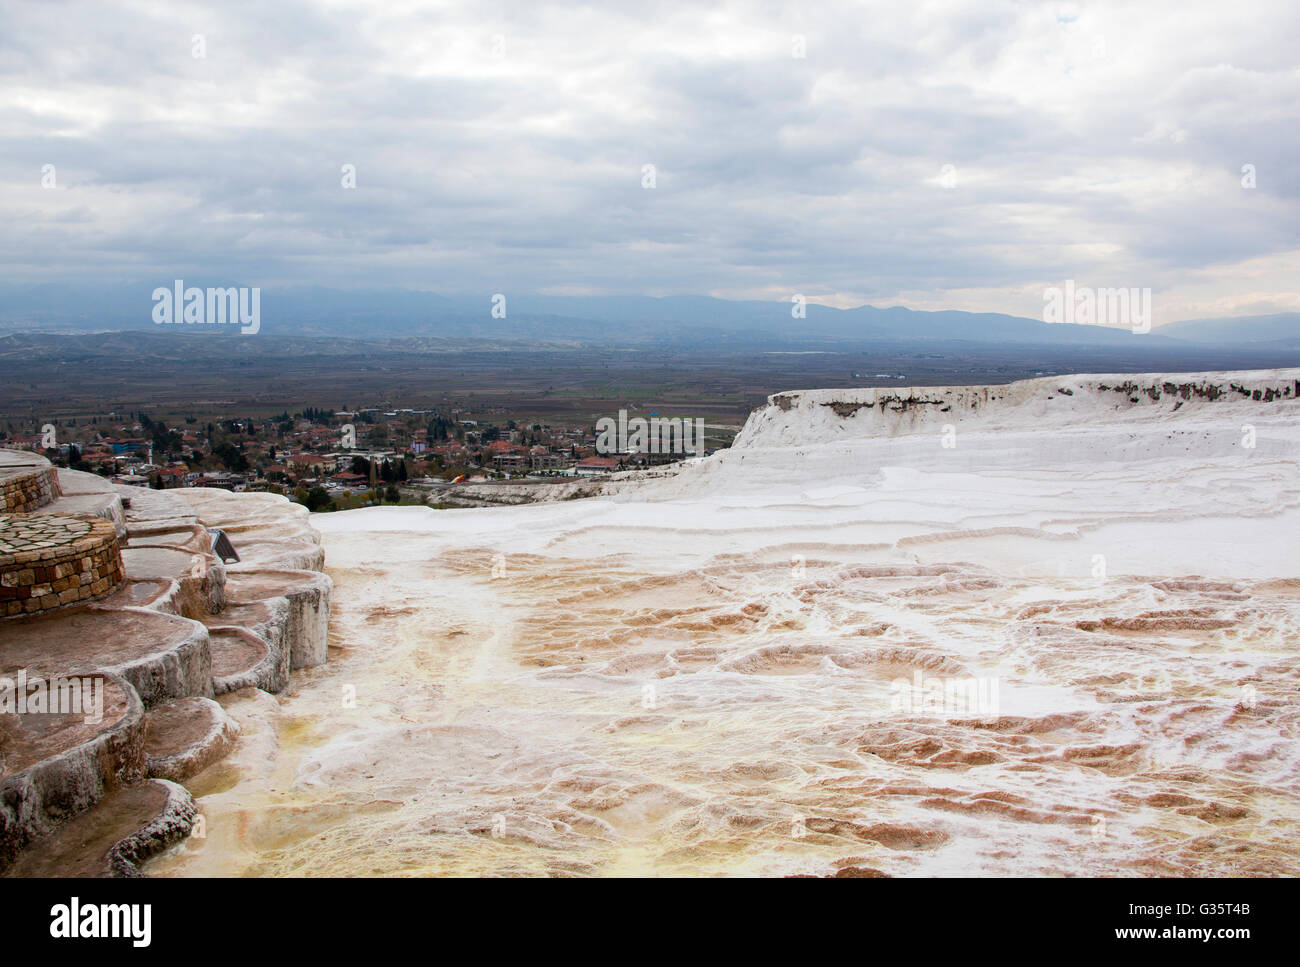 The view down the slope whited with carbonate minerals left by flowing water in Pamukkale, the World heritage site - Stock Image